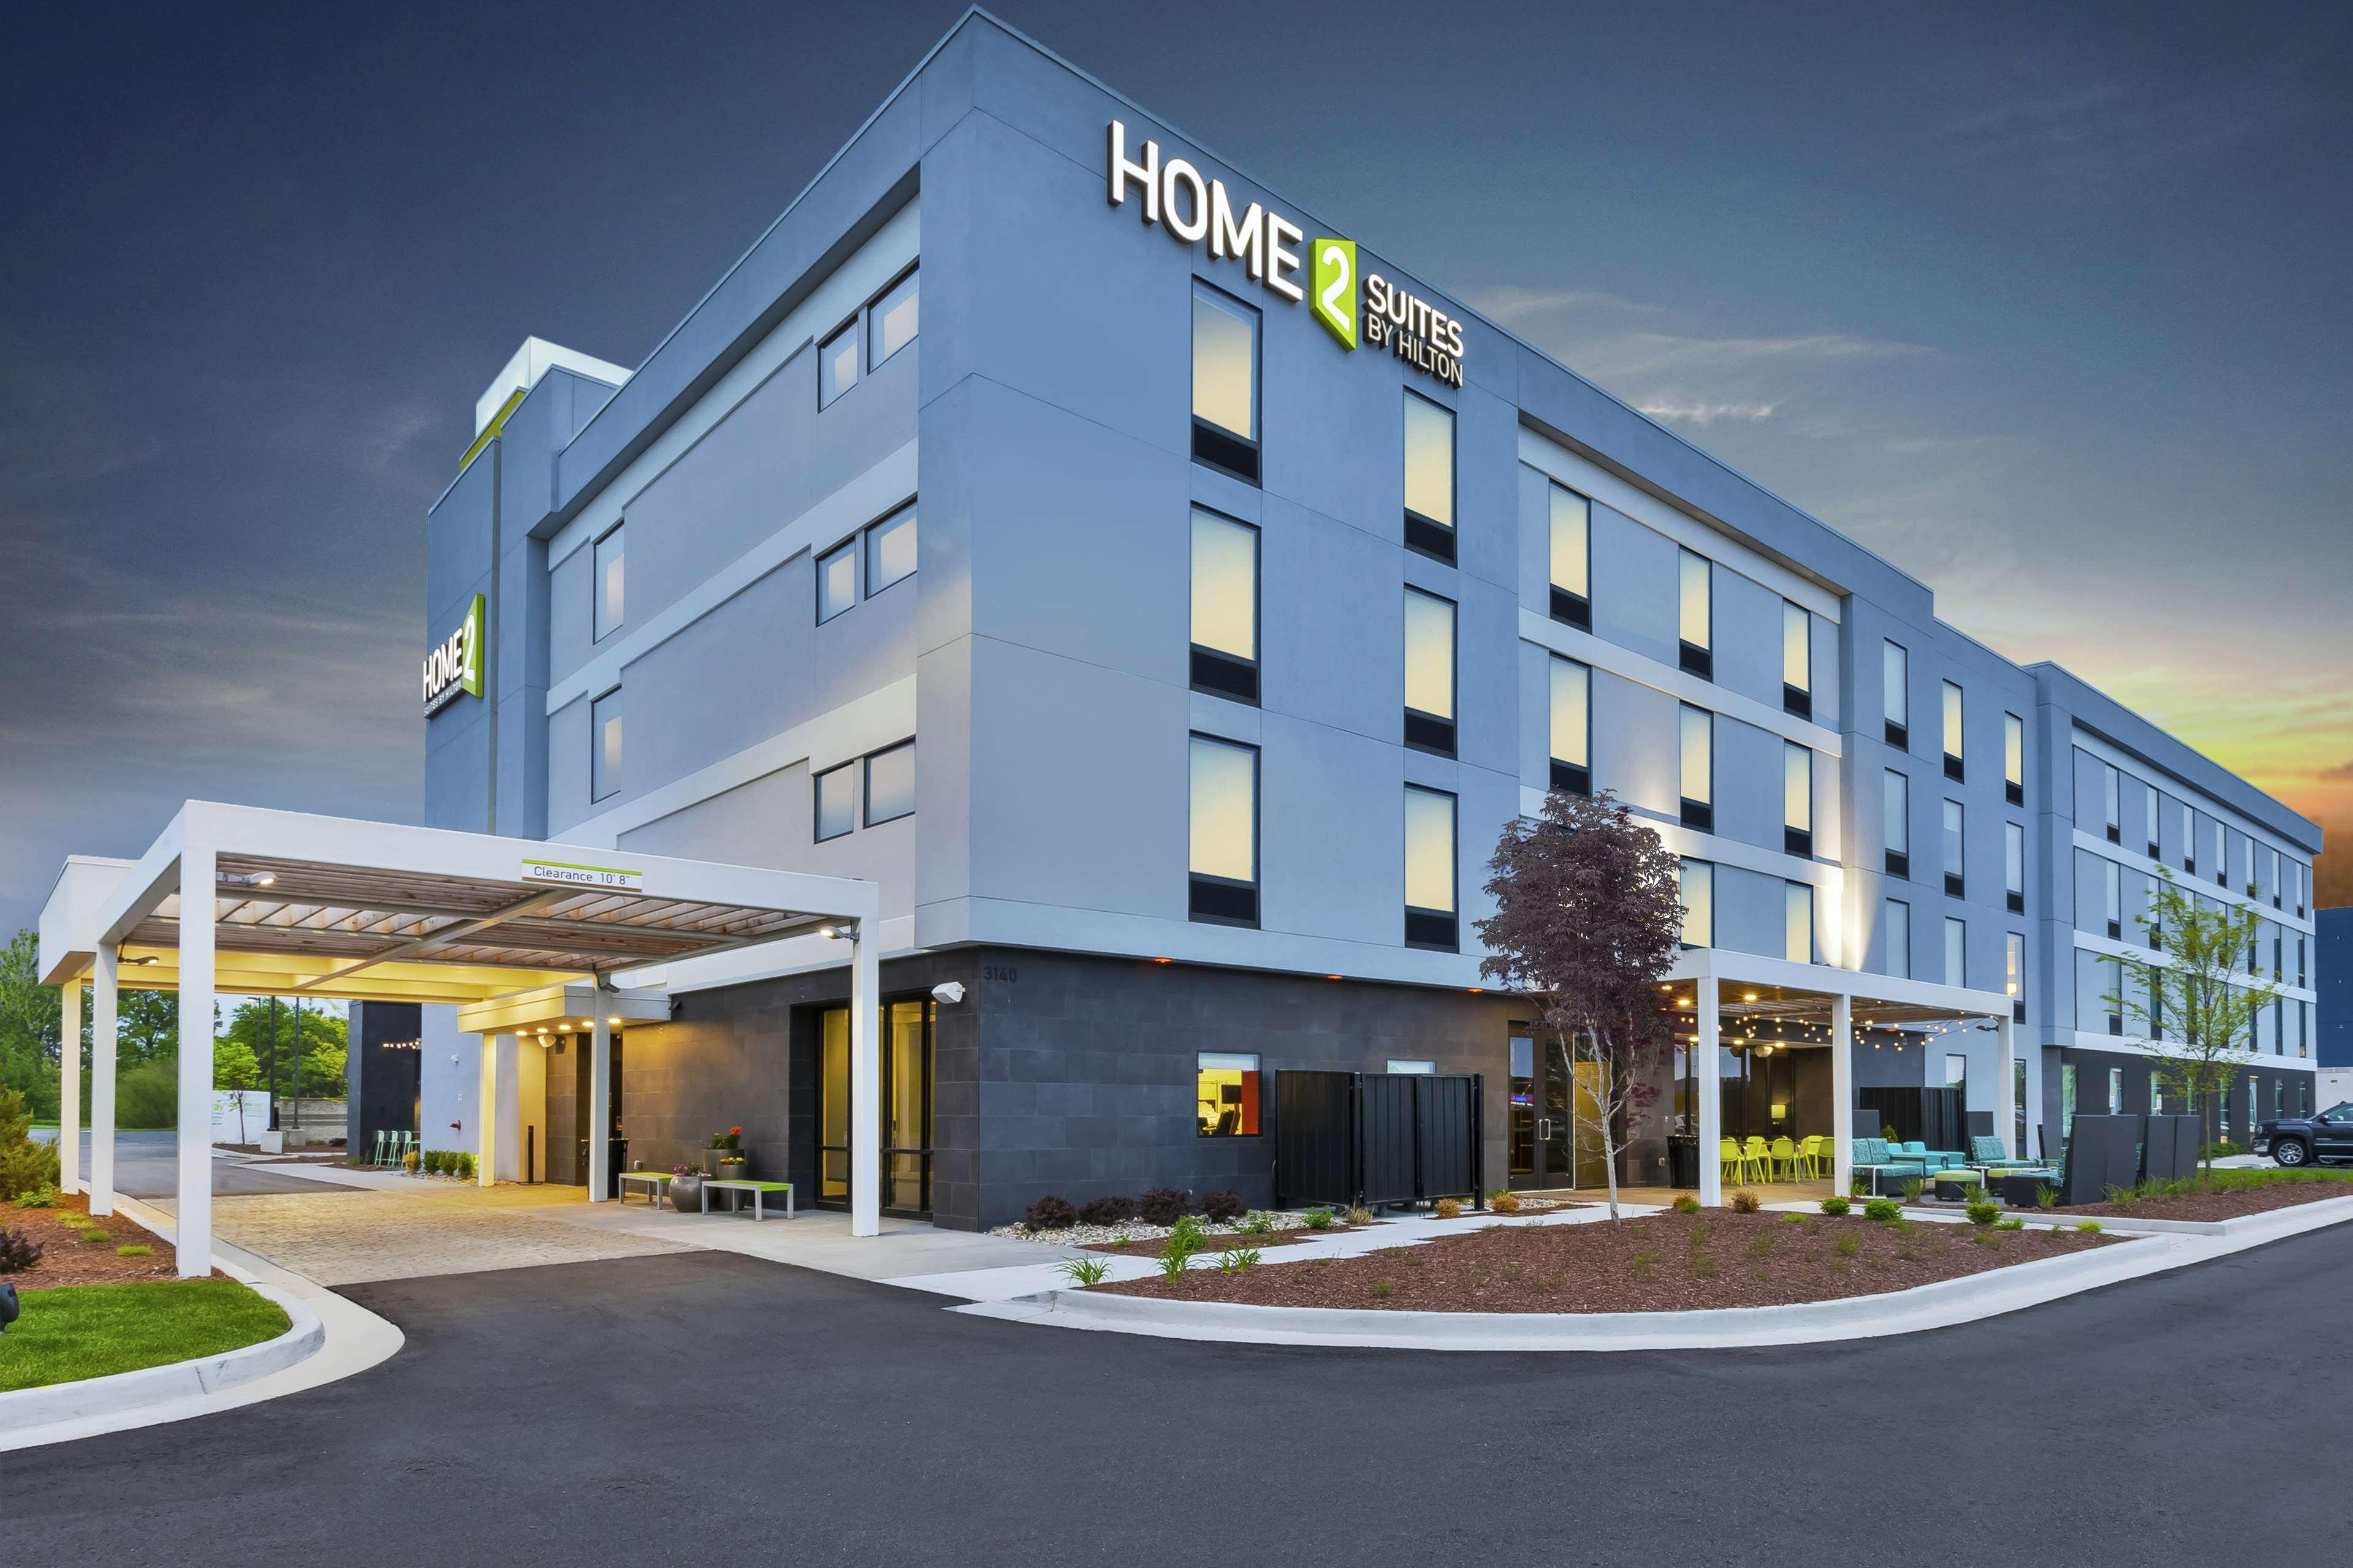 Home2 Suites by Hilton Holland, MI, Ottawa